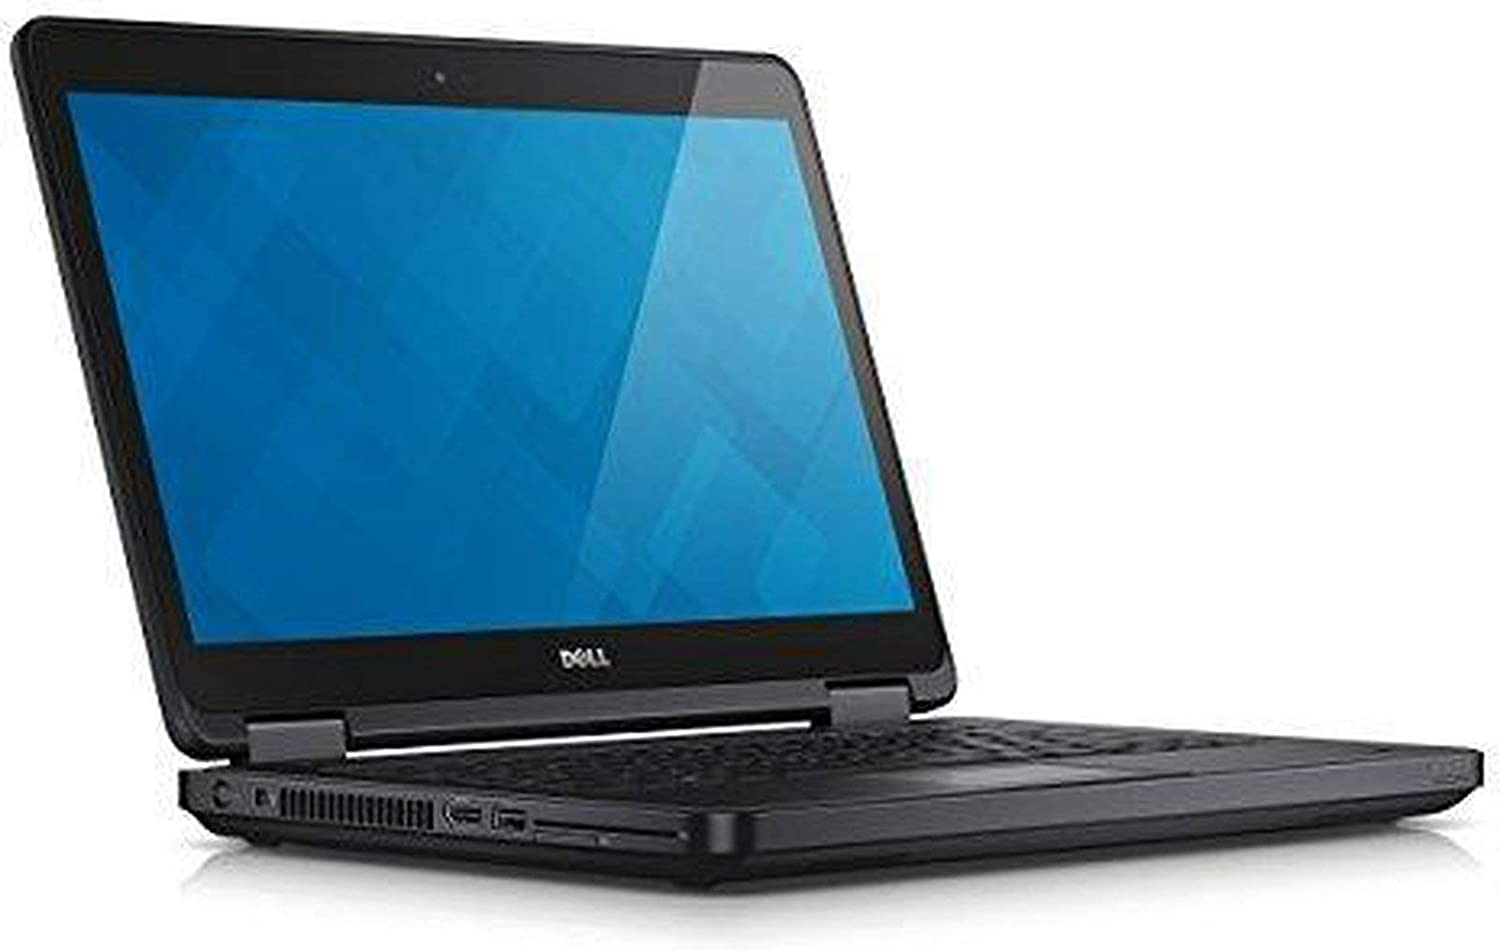 Dell Latitude 14 5000 Weekly update E5450 14